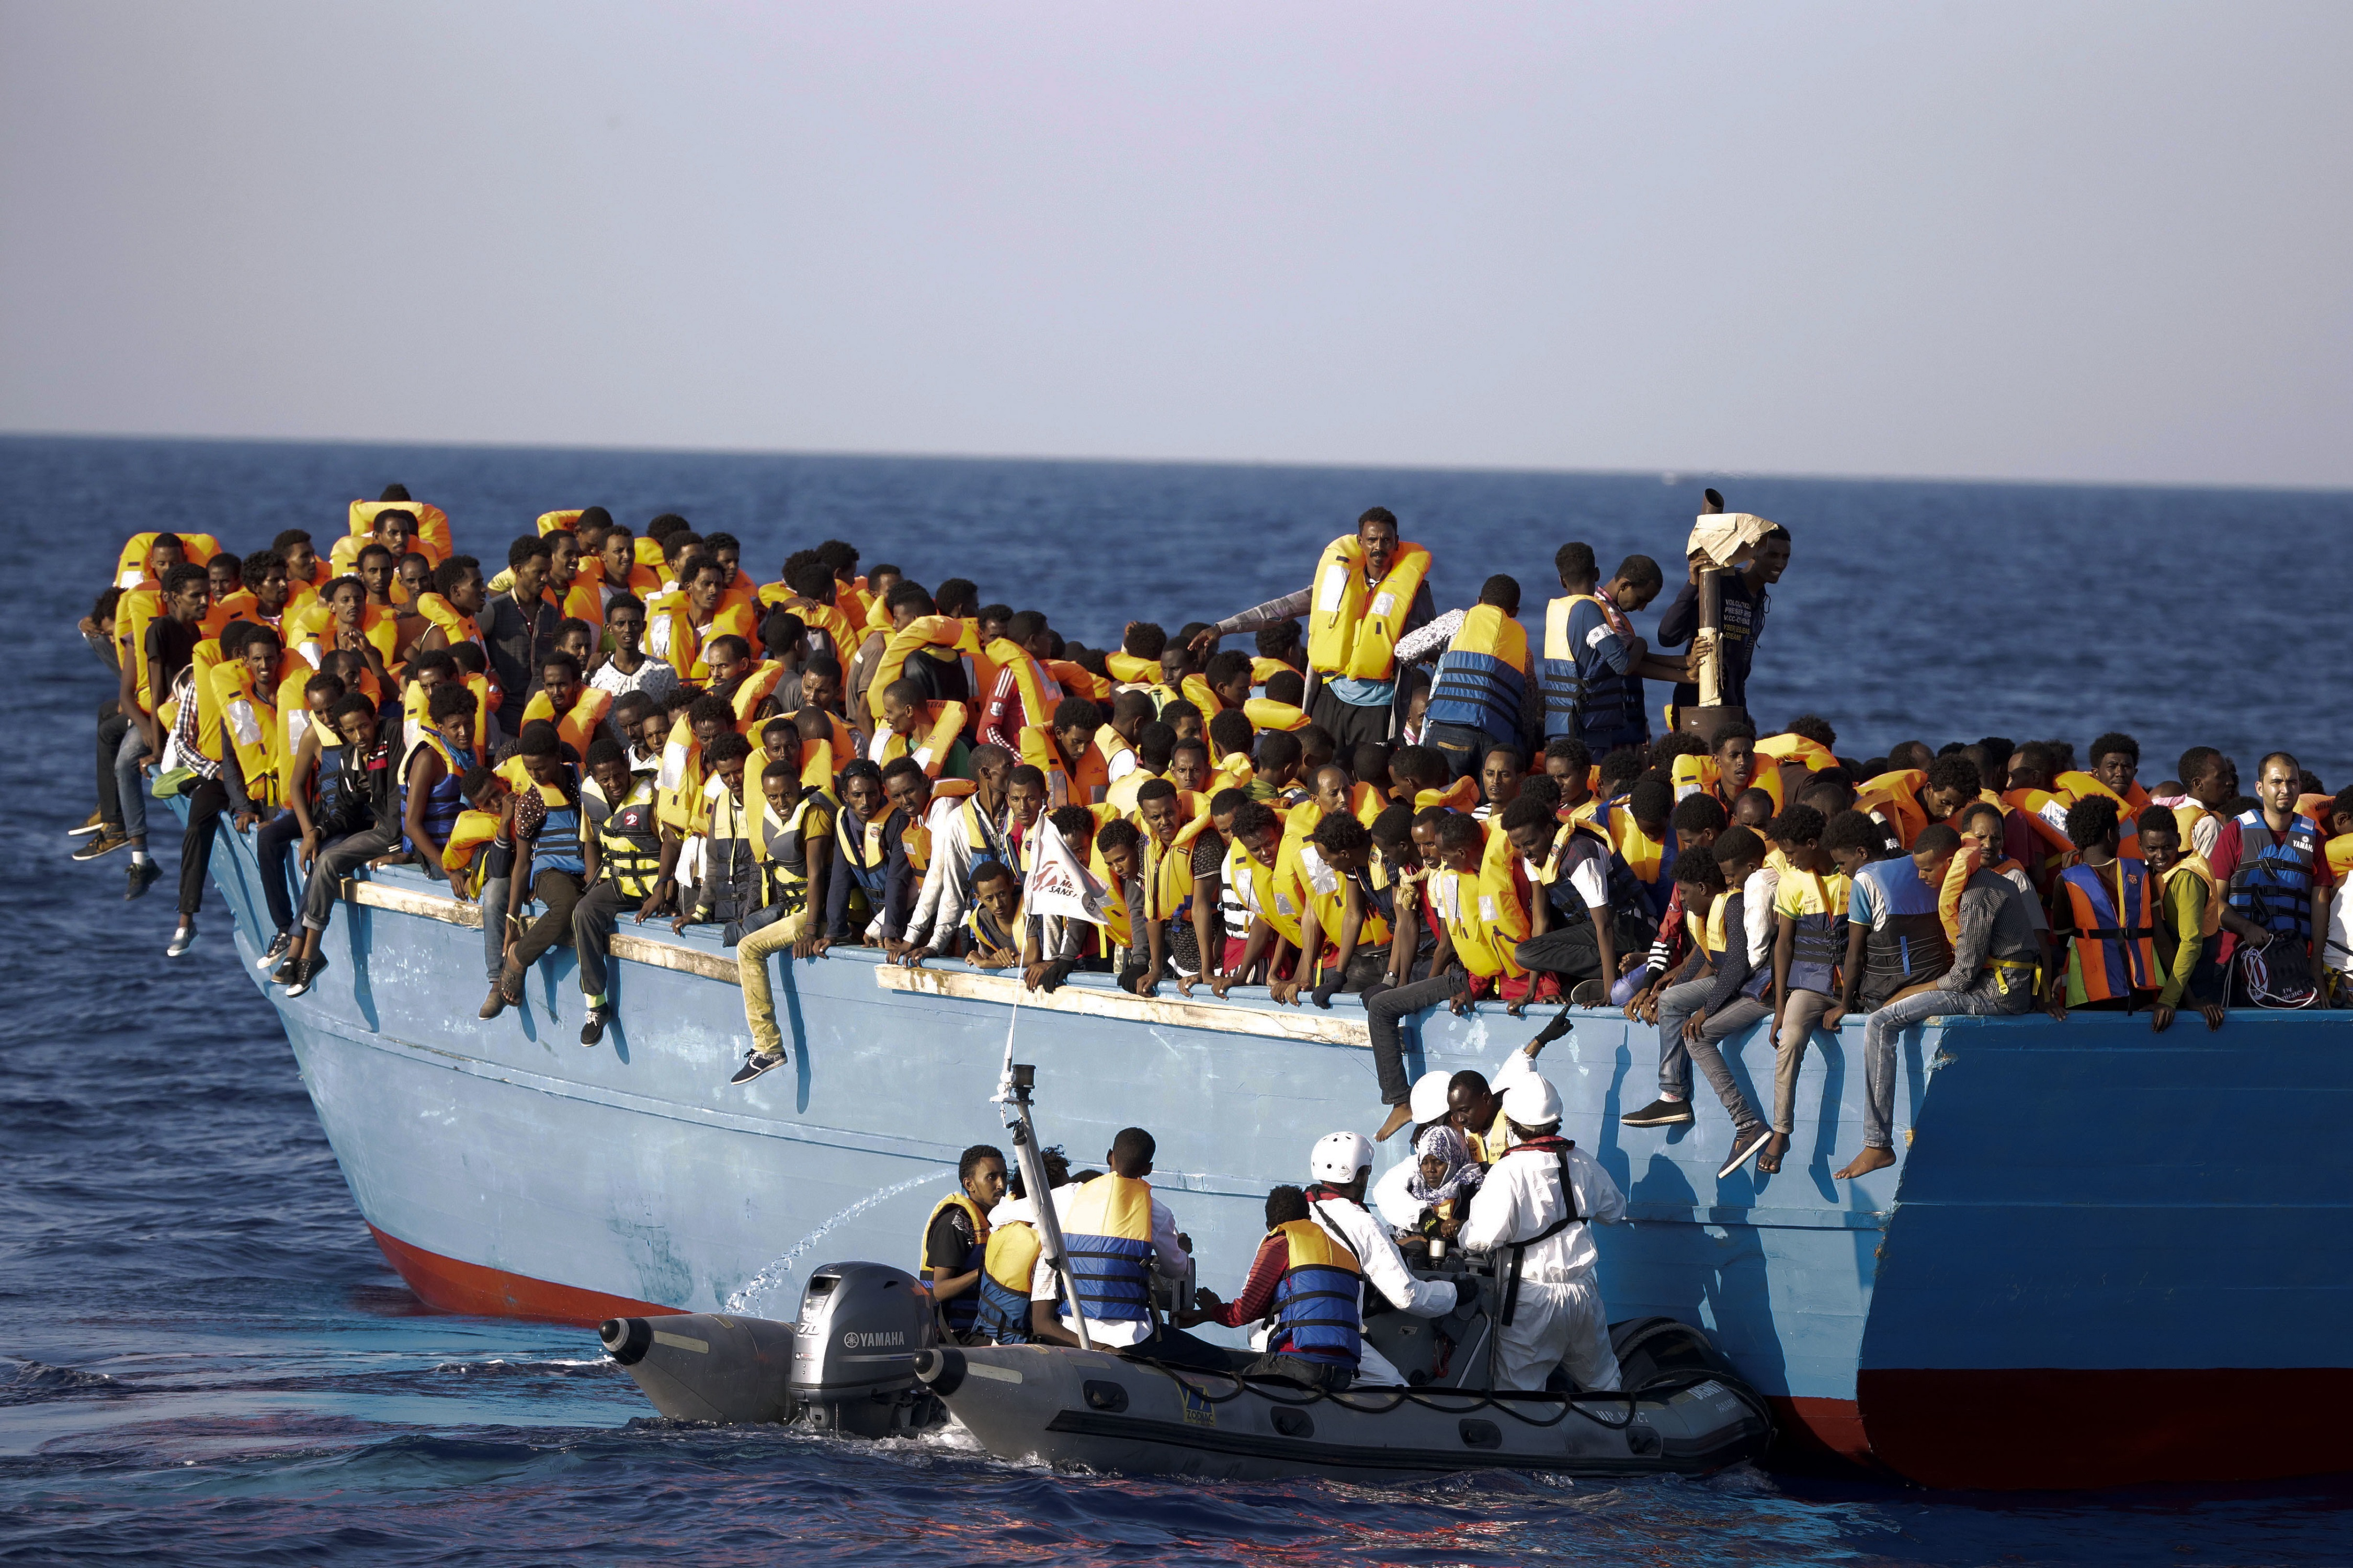 The right to asylum; is there light at the end of the tunnel or it's an incoming train?